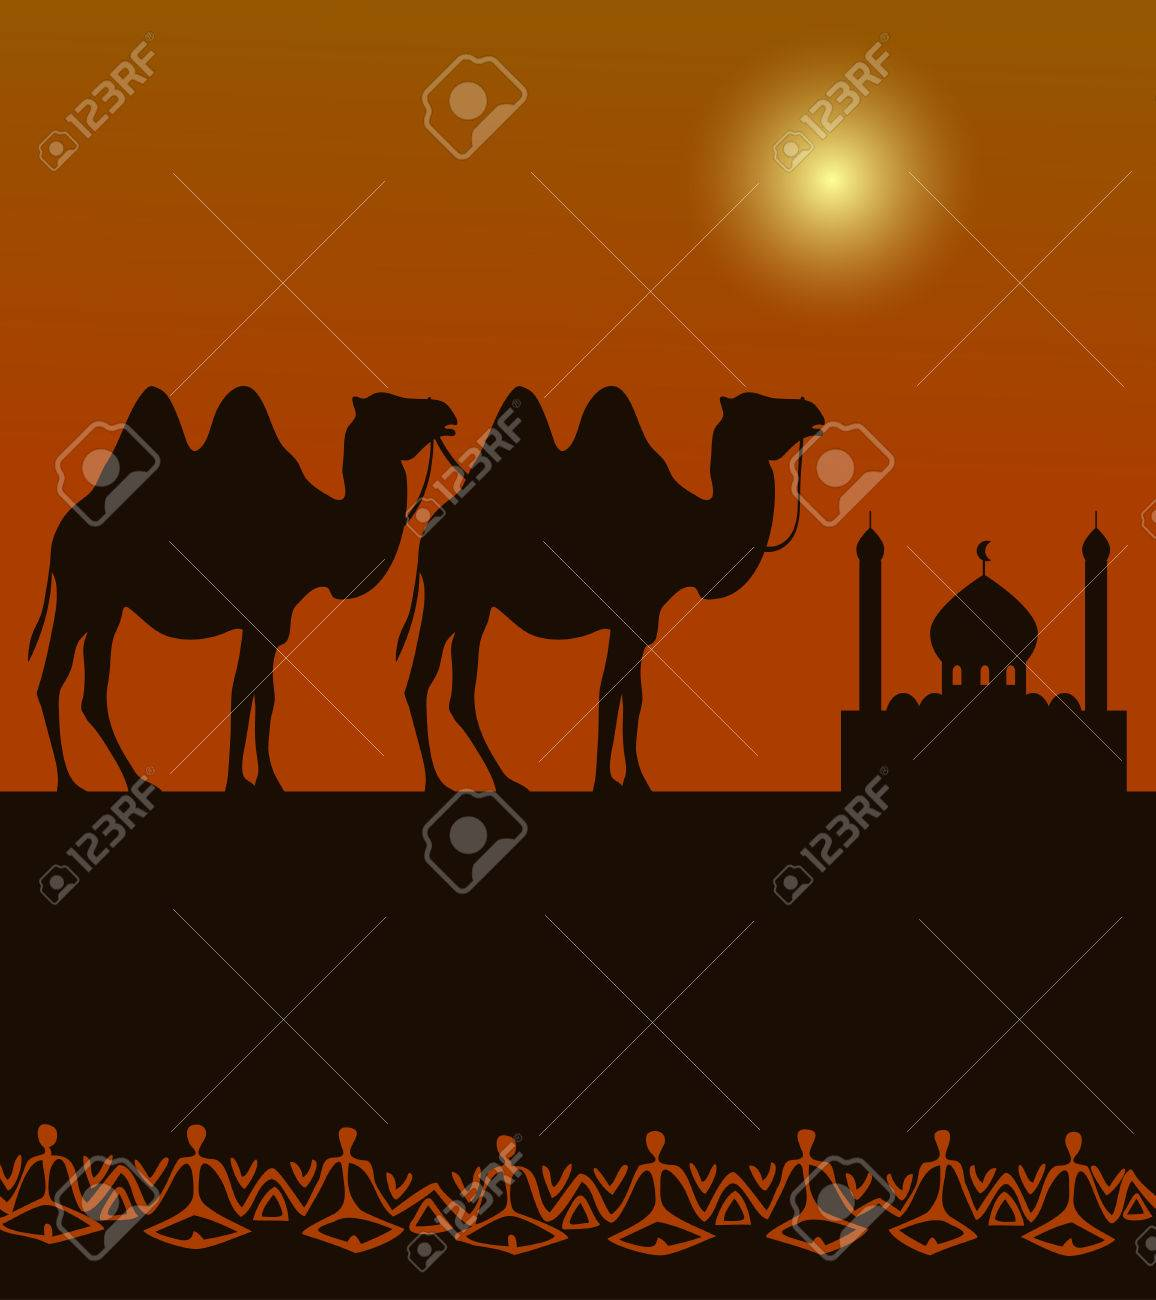 camels silhouette on the desert with middle east architecture in the distance - 53262719